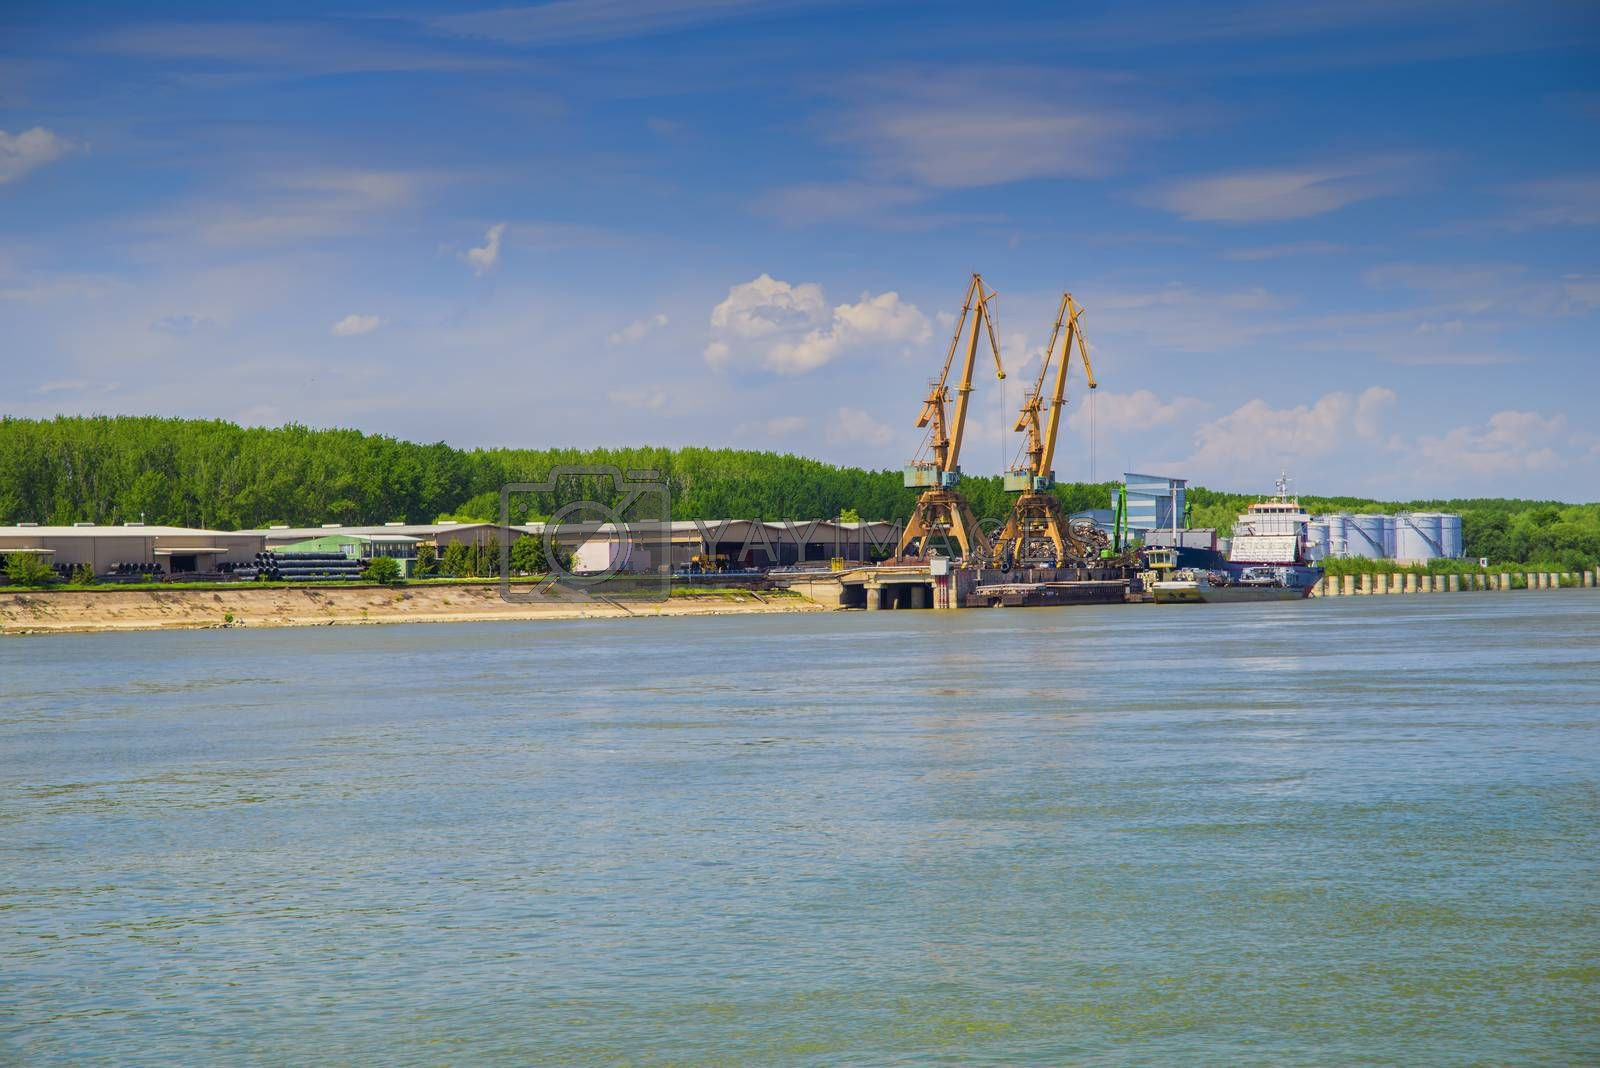 Shipyard with cranes on Danube river in a sunny summer day